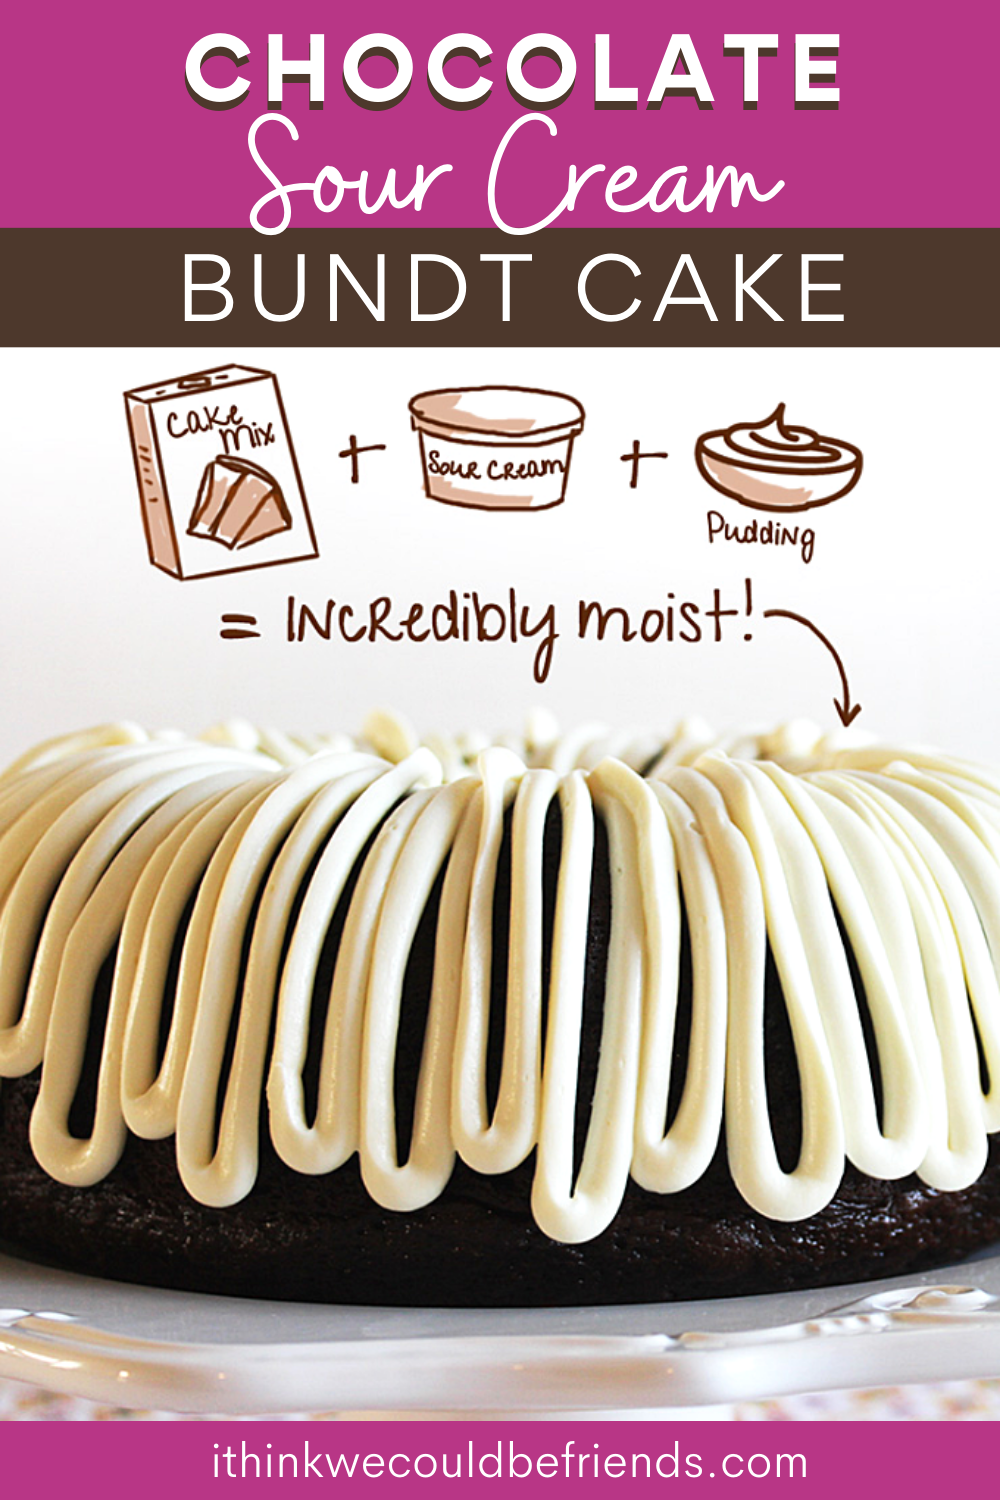 The Best Chocolate Sour Cream Bundt Cake Recipe Starts With A Cake Mix But Gets Better In 2020 Bundt Cakes Recipes Bundt Cake Recipes